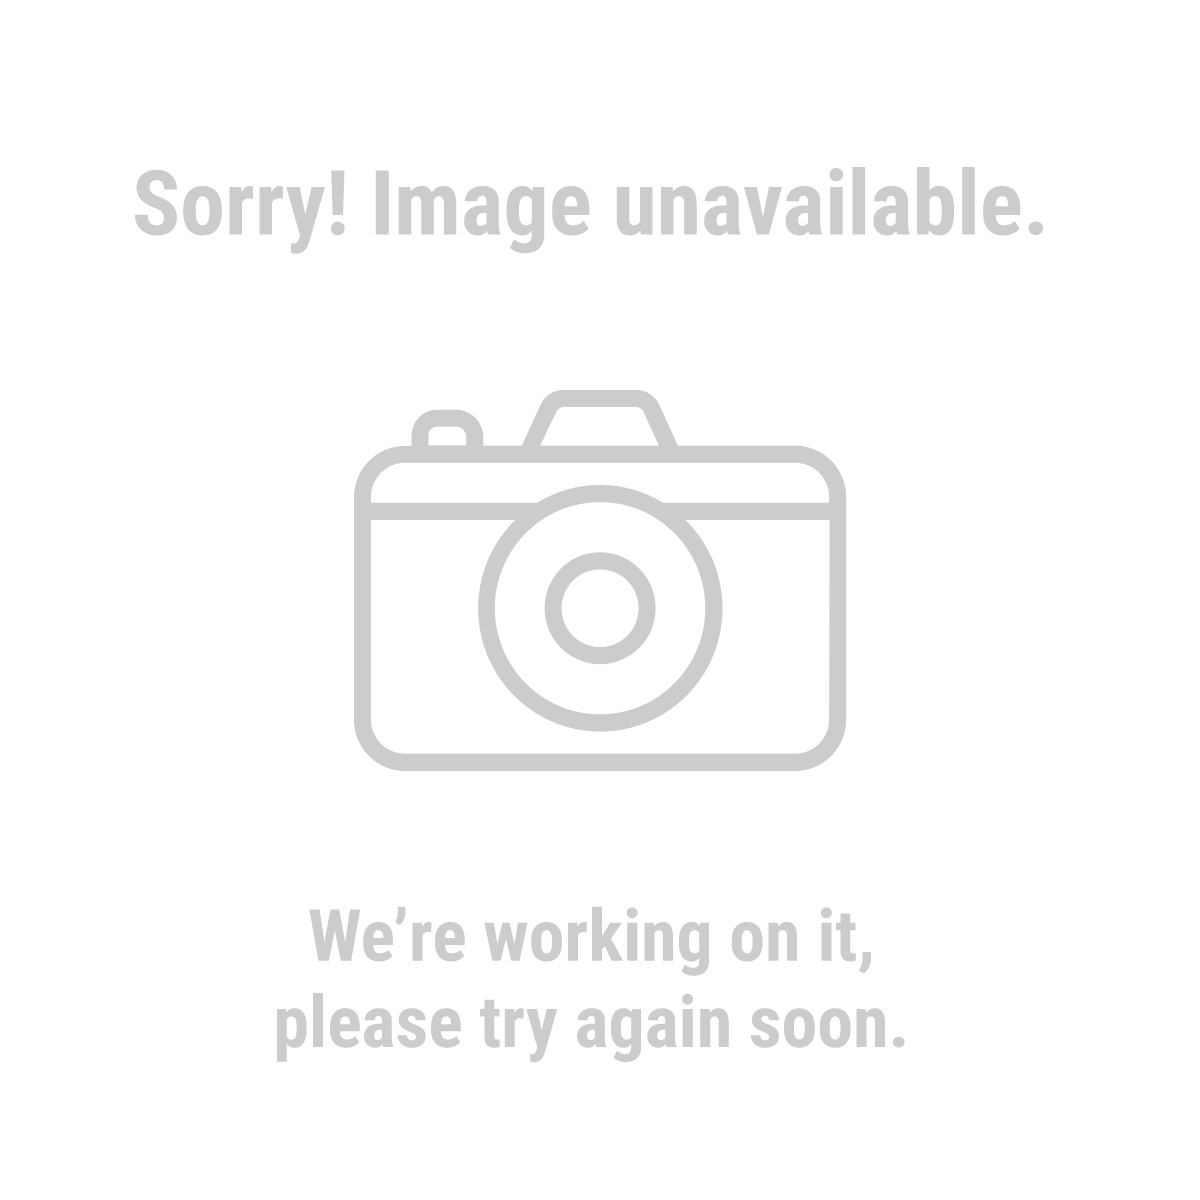 Trickle Charger For Car >> 1.5 Watt Solar Battery Charger